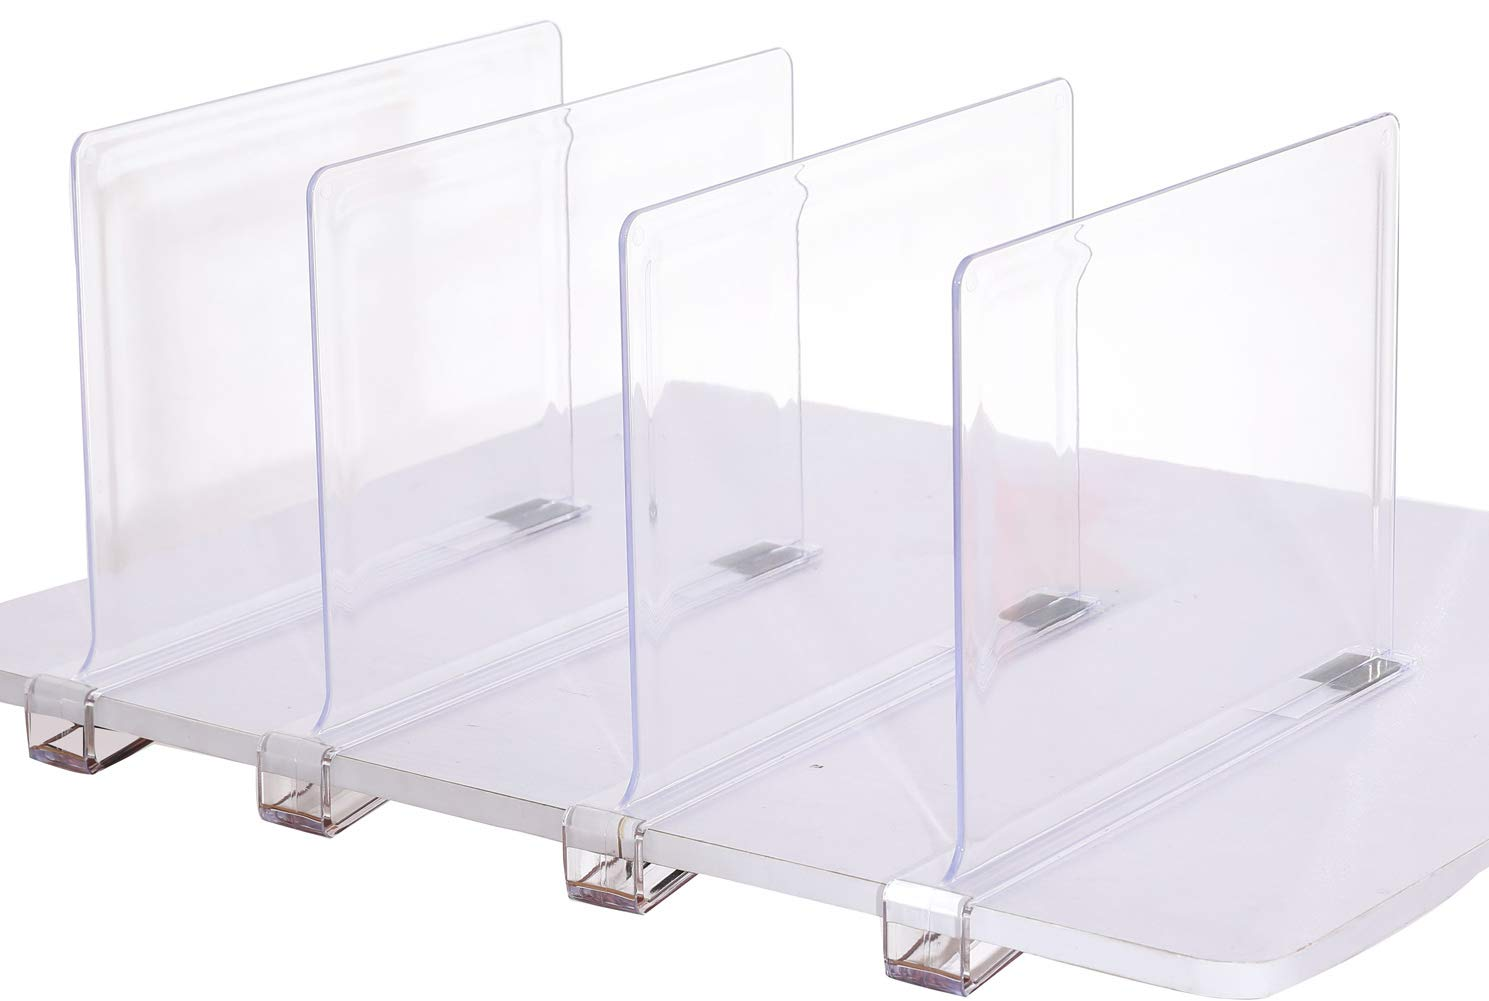 Sooyee Beautiful 4 PCS Acrylic Shelf Dividers, Perfect Perfect for Closets Kitchen Bedroom Shelving Organization to Organize Clothes Closet Shelves, Books,Towels and Hats, Purses Separators,Clear. by Sooyee